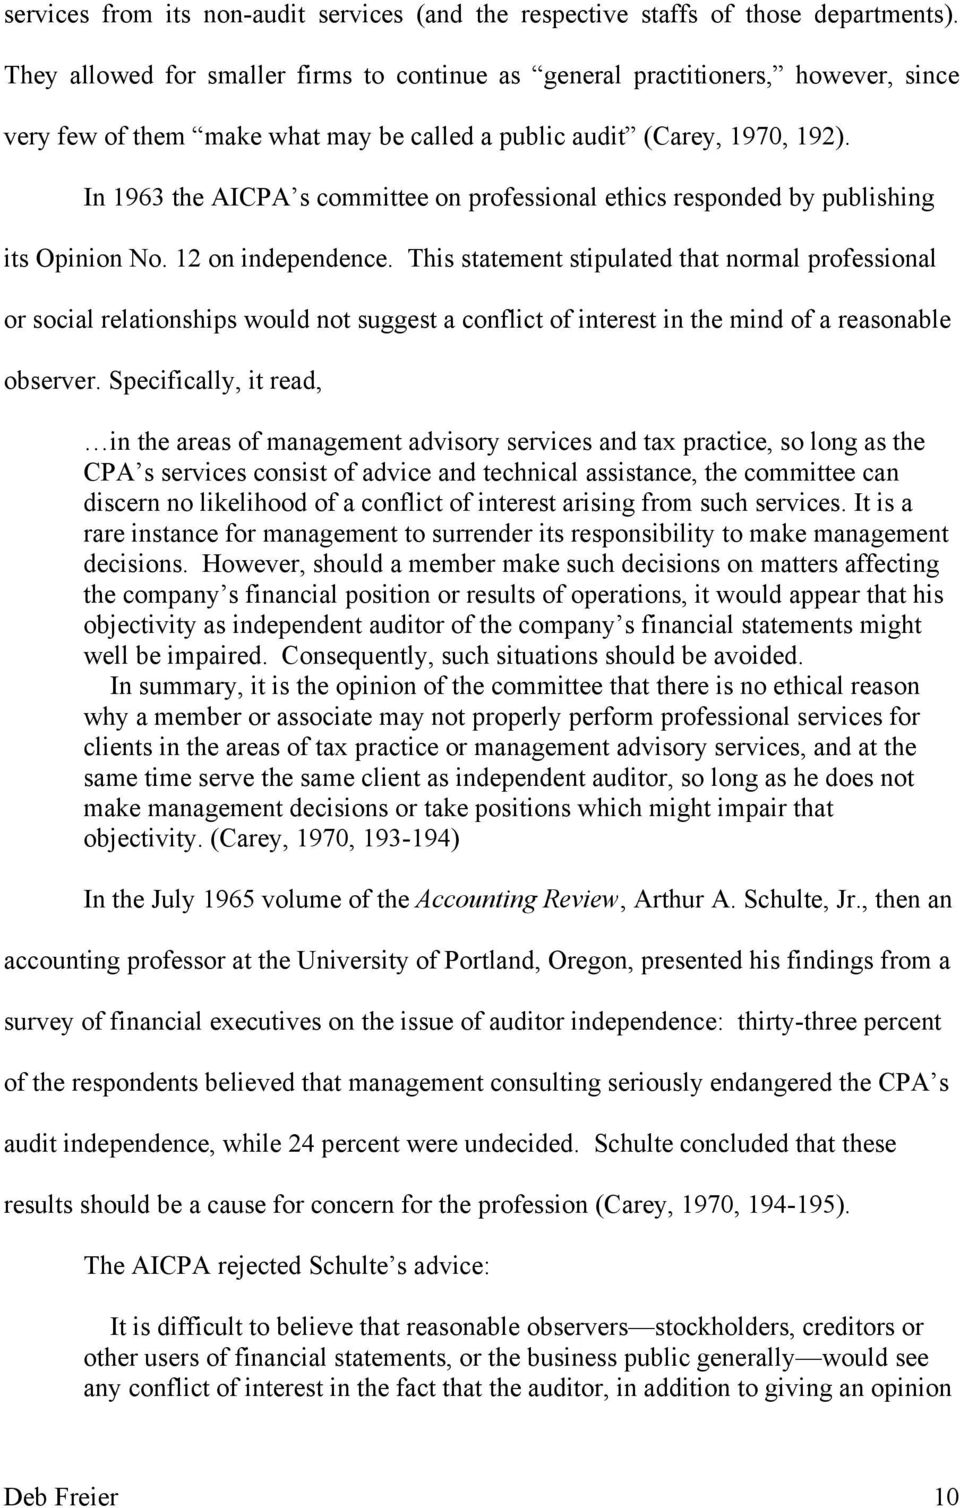 In 1963 the AICPA s committee on professional ethics responded by publishing its Opinion No. 12 on independence.